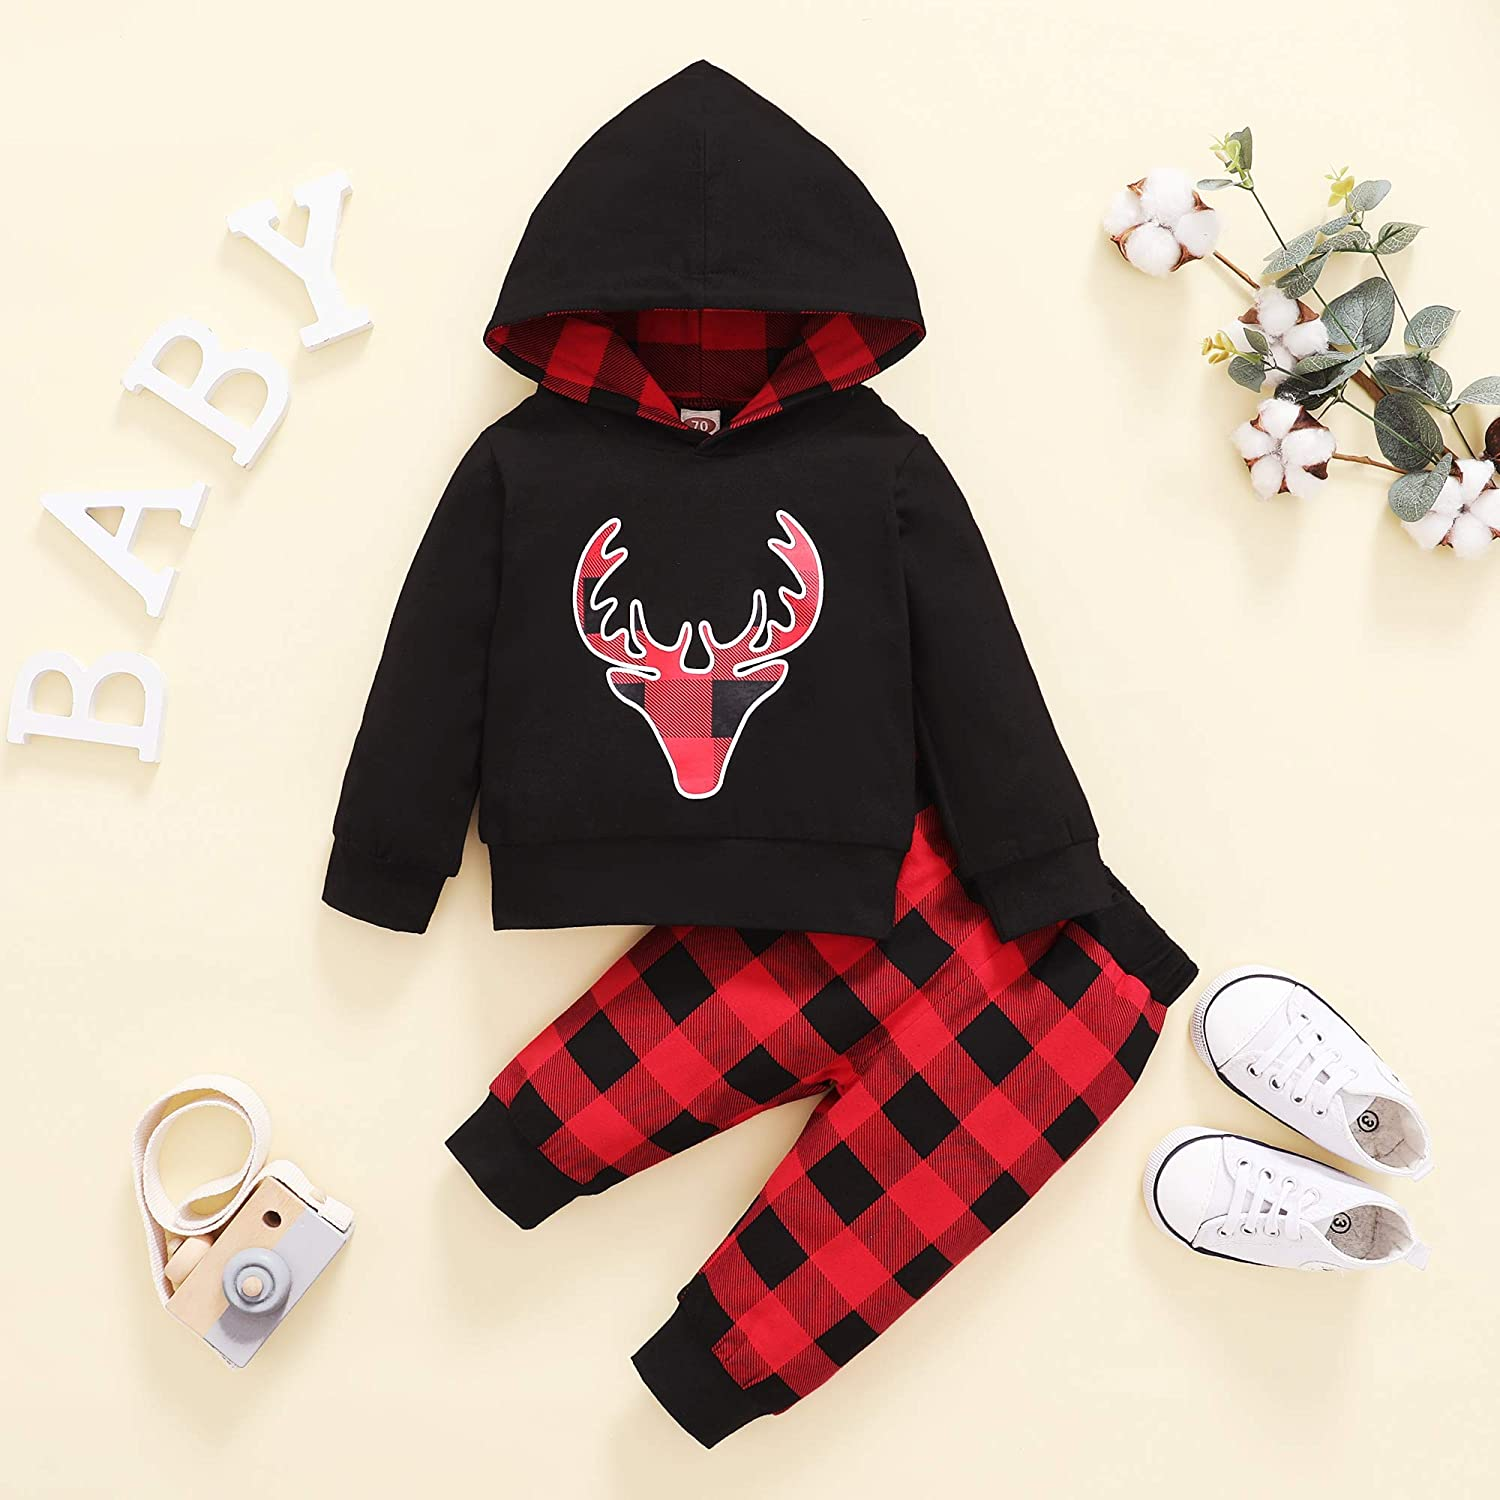 Kucnuzki Baby Boys Clothes Toddler Boy Fall Winter Outfits Dinosaur Hoodie Pants Set Long Sleeves Infant Sweatsuit